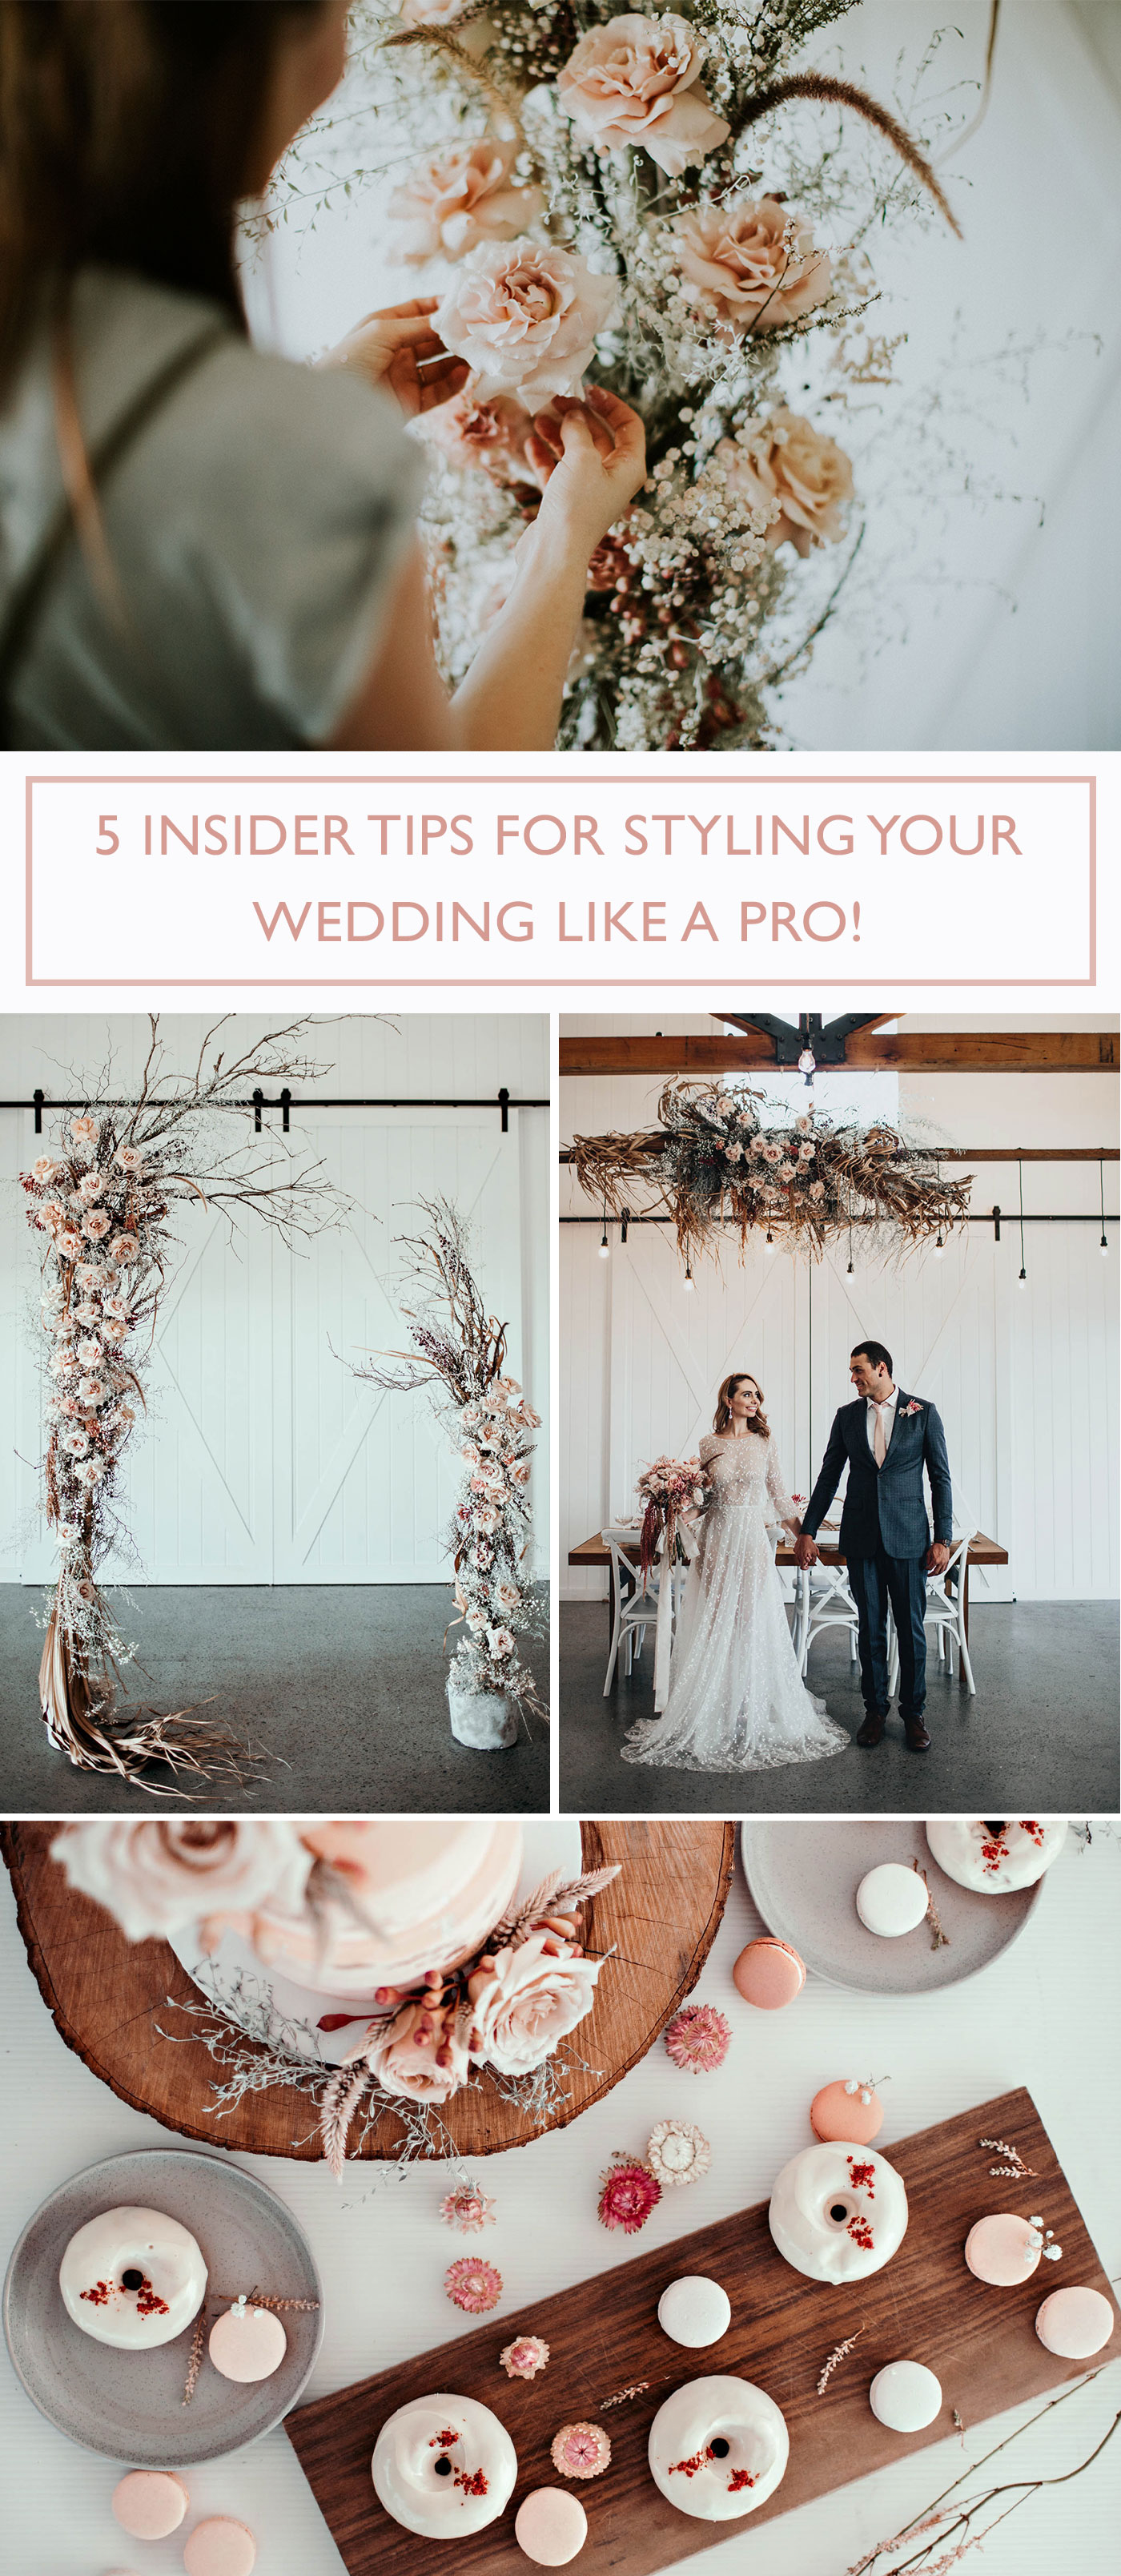 5 Insider Tips for Styling Your Wedding Like a Pro!